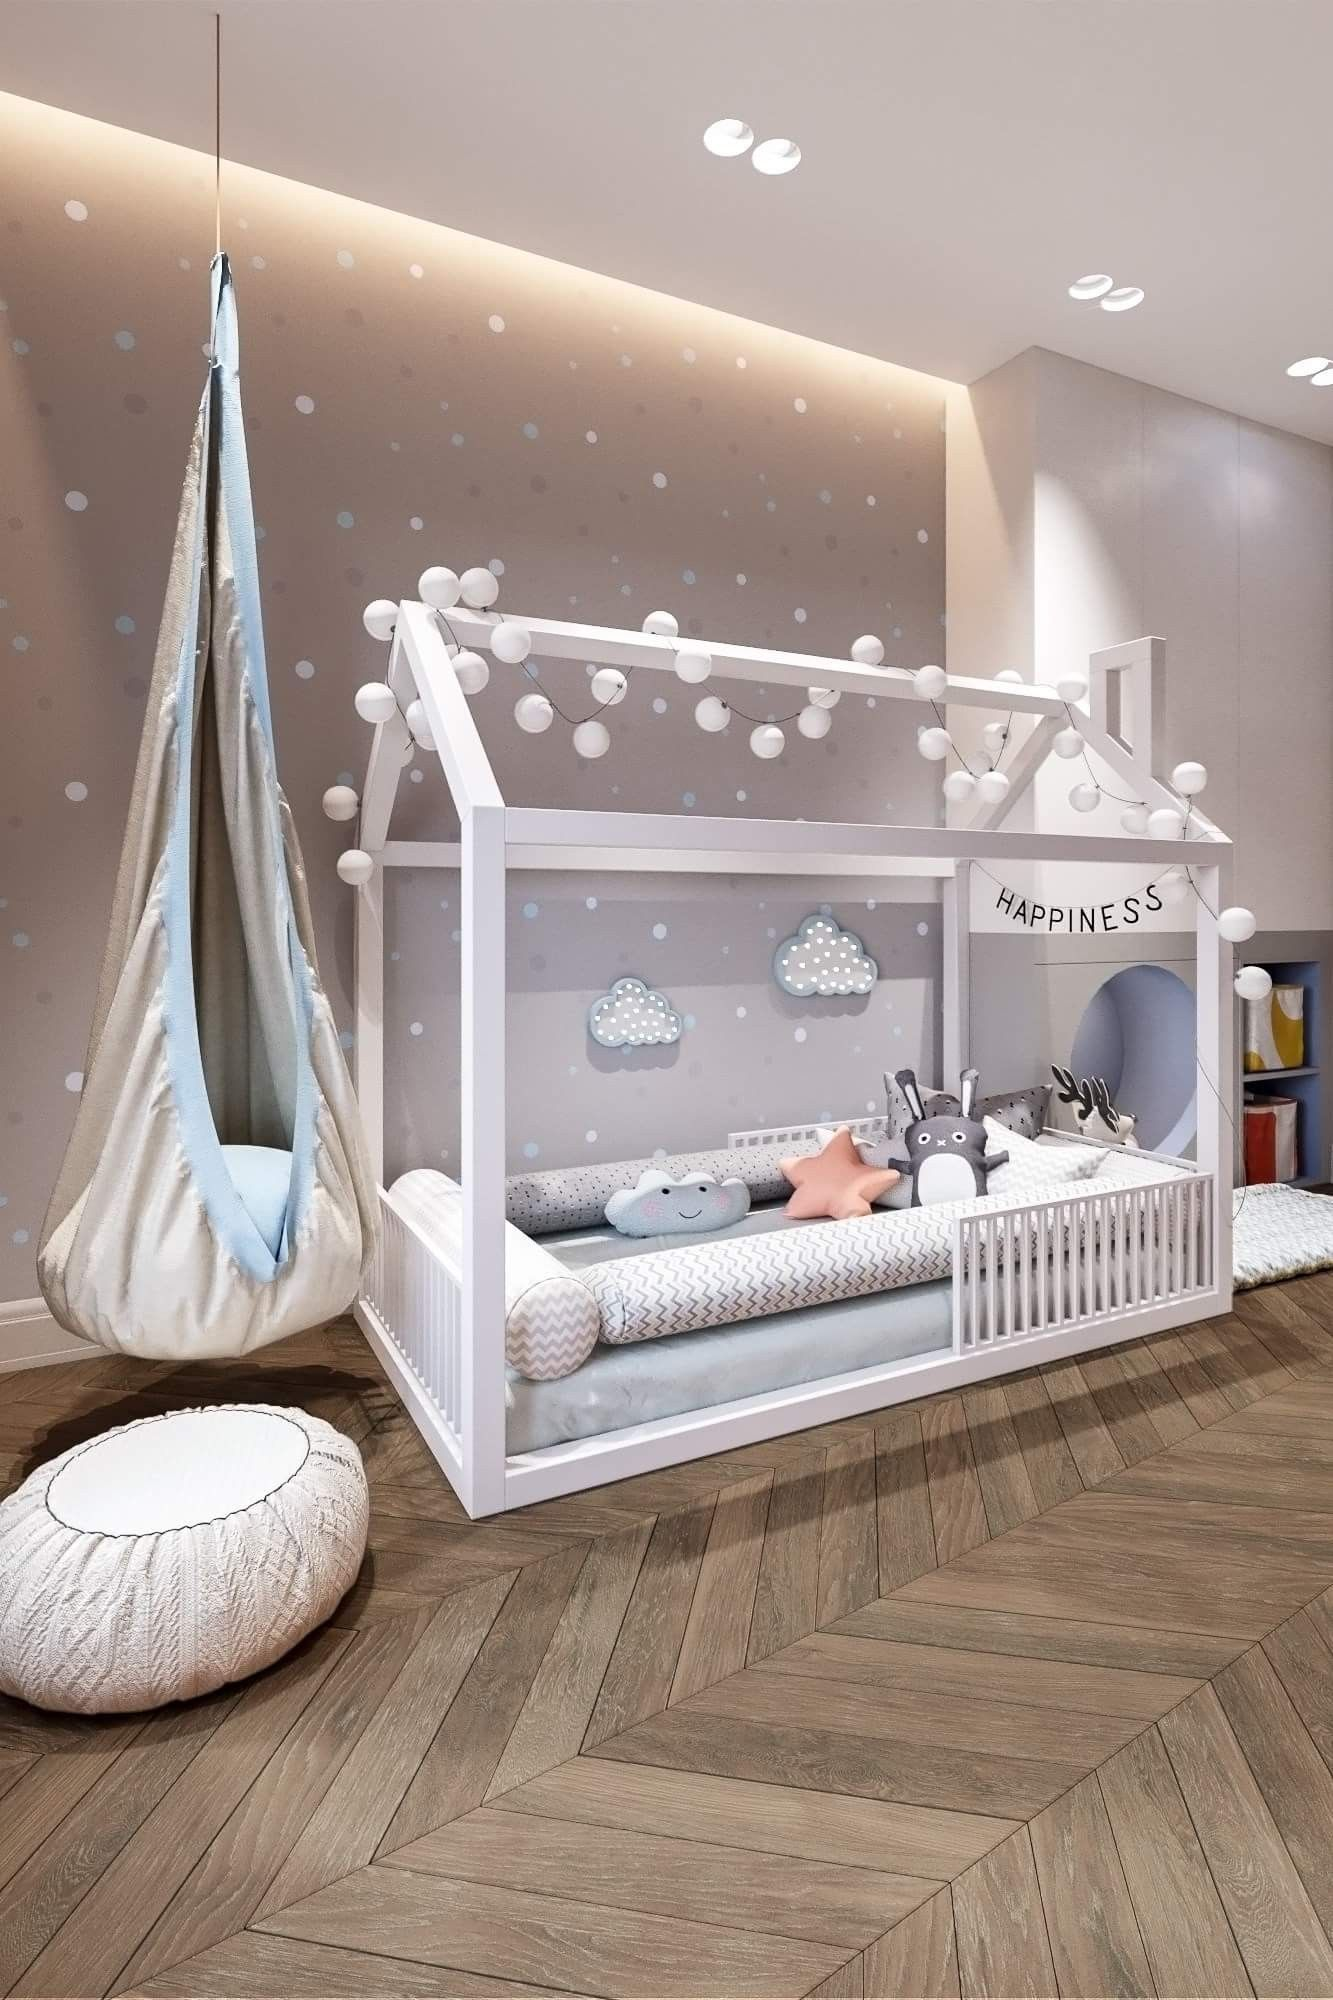 You'll Find This Children Room Design The Most Fun! images